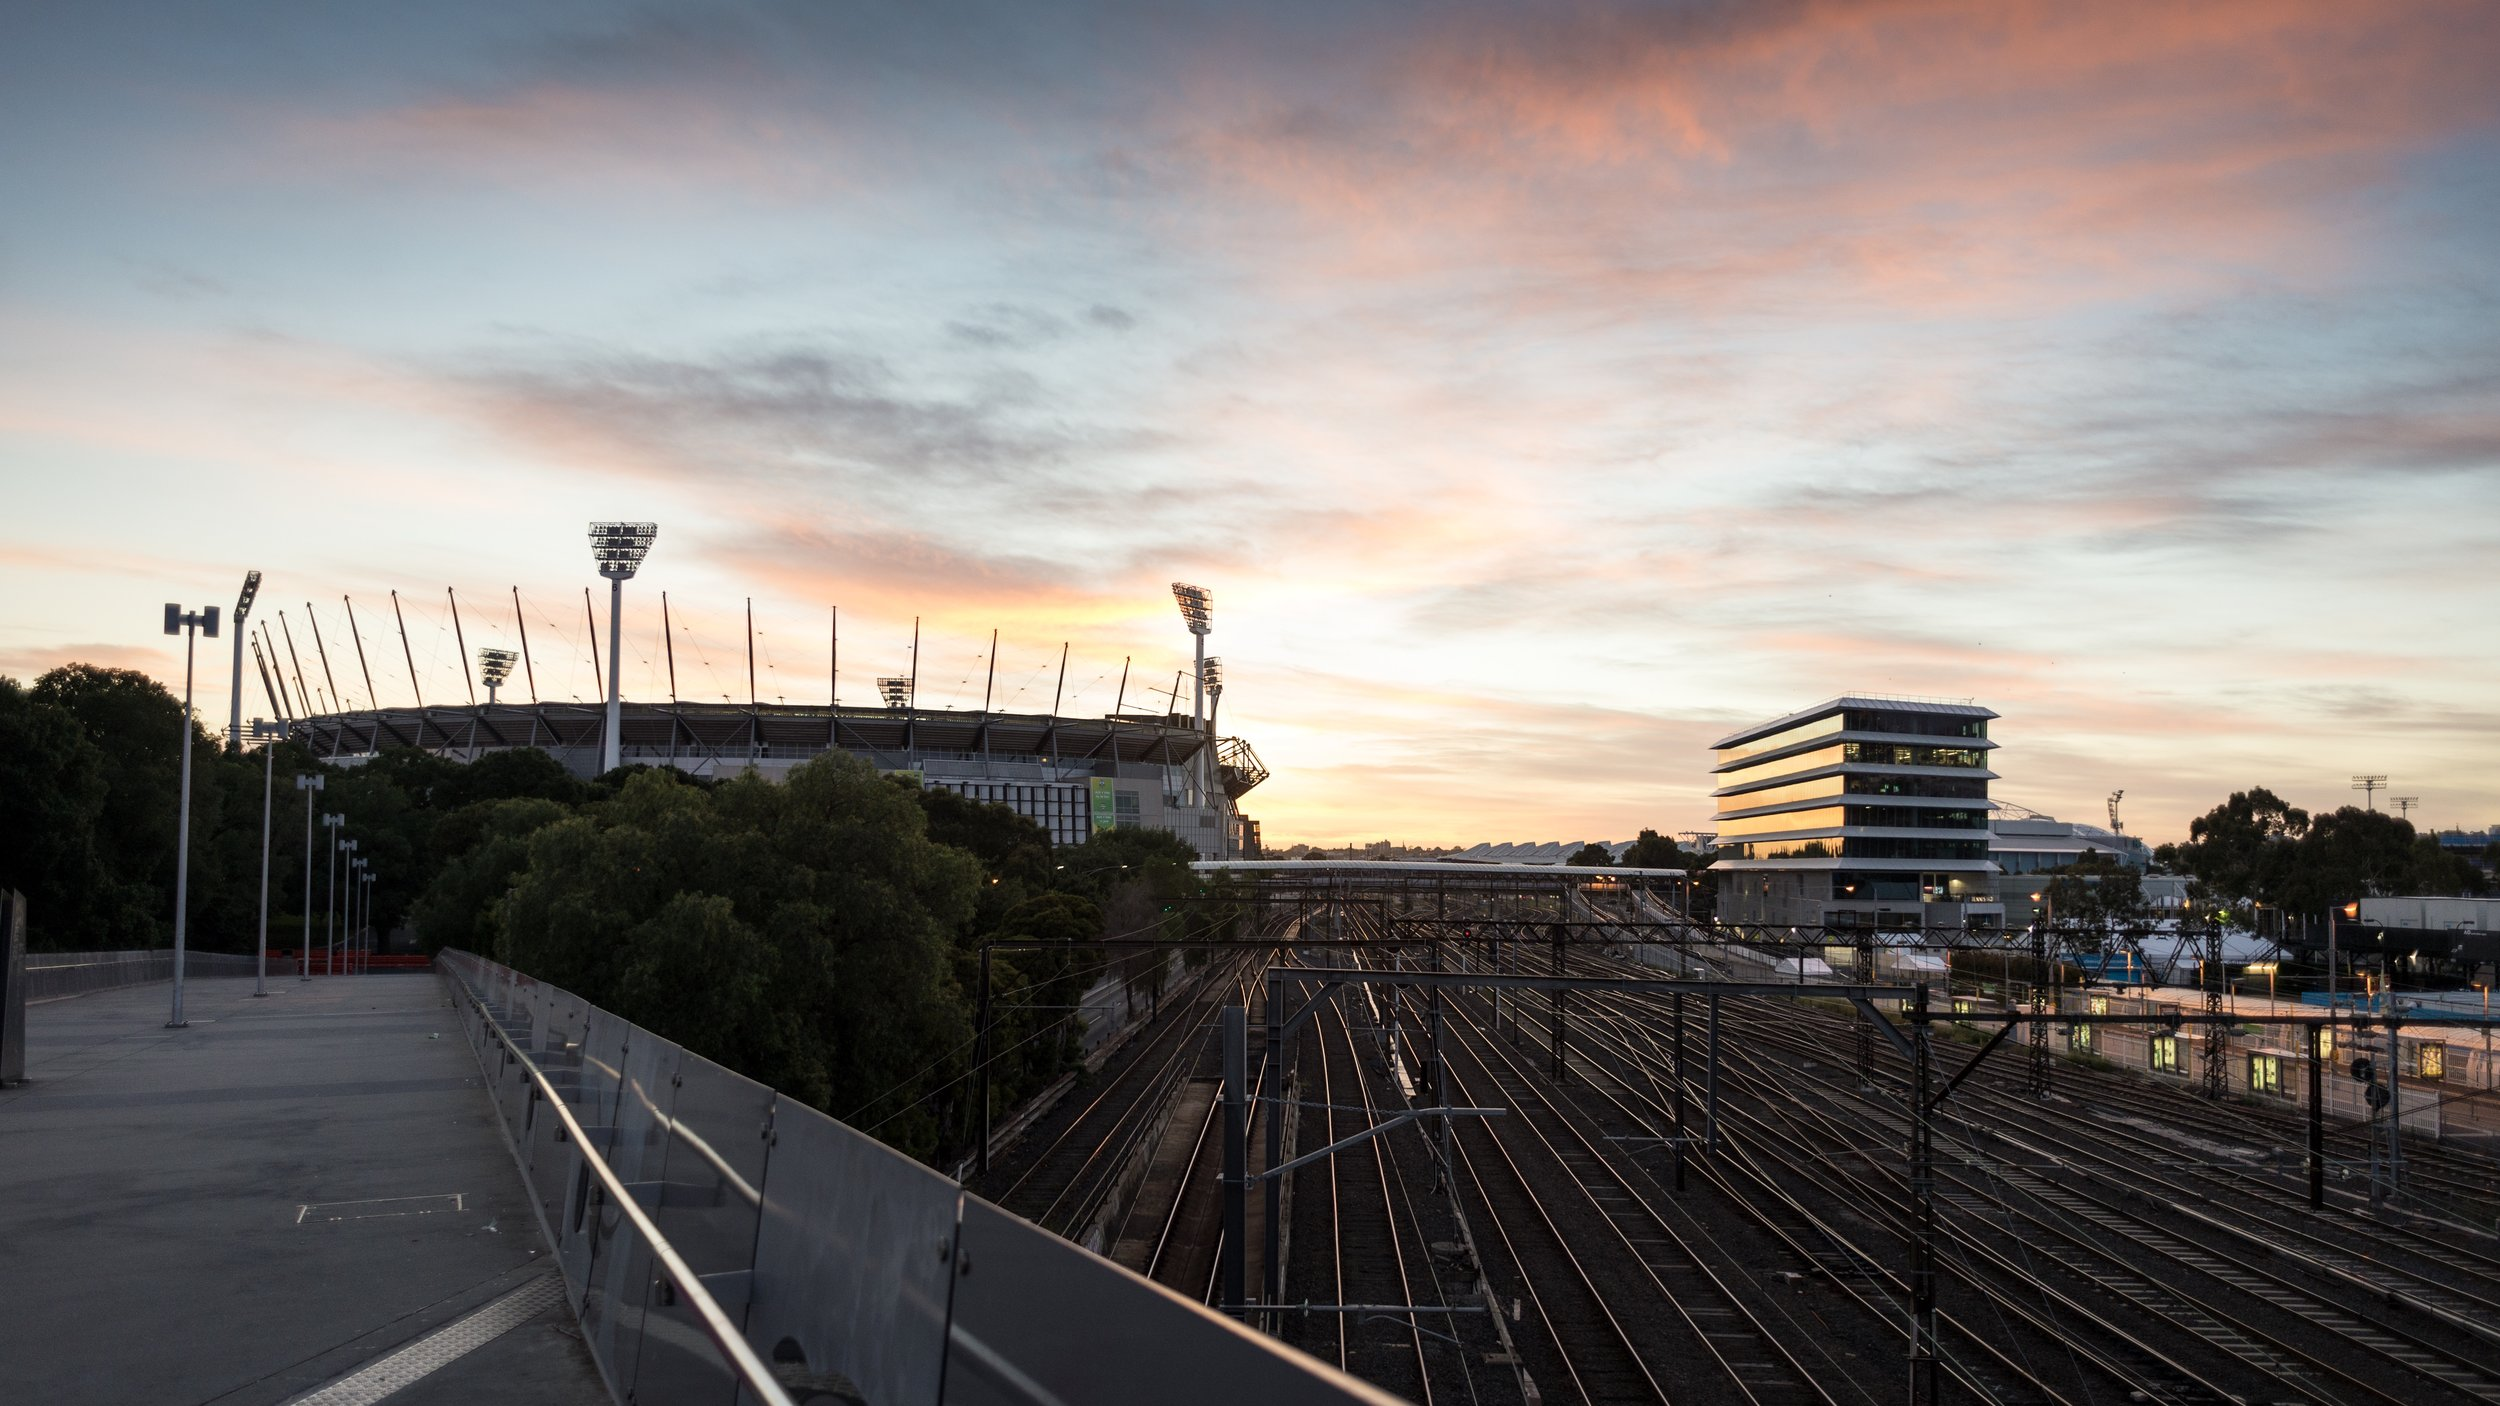 Nikon D610, Nikkor 24 2.8D, 1/200, ISO-400. Taken on the way to a morning ride, featuring the mighty MCG.